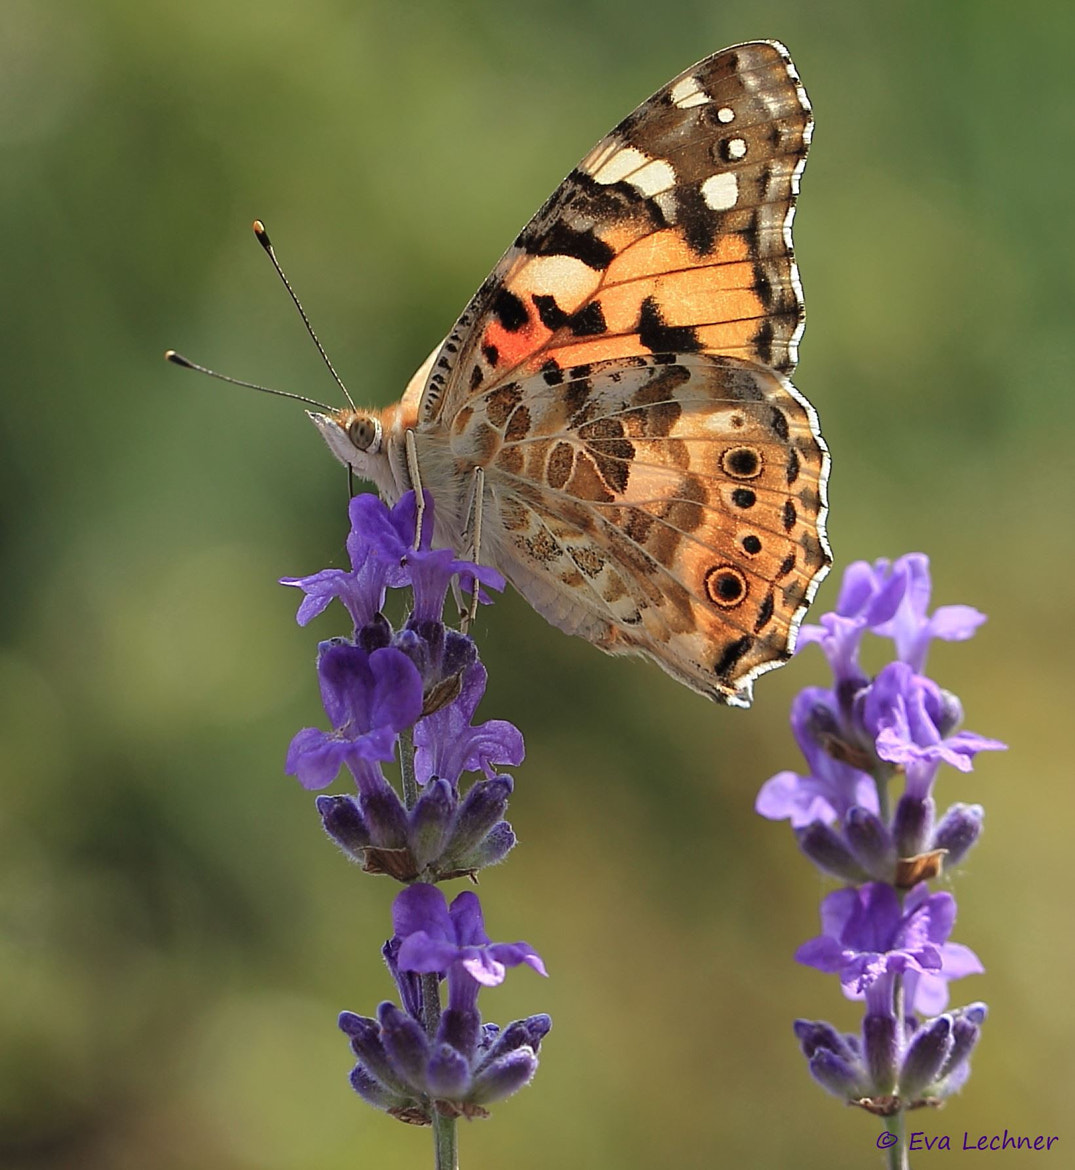 Photograph Lavender & Butterfly by Eva Lechner on 500px